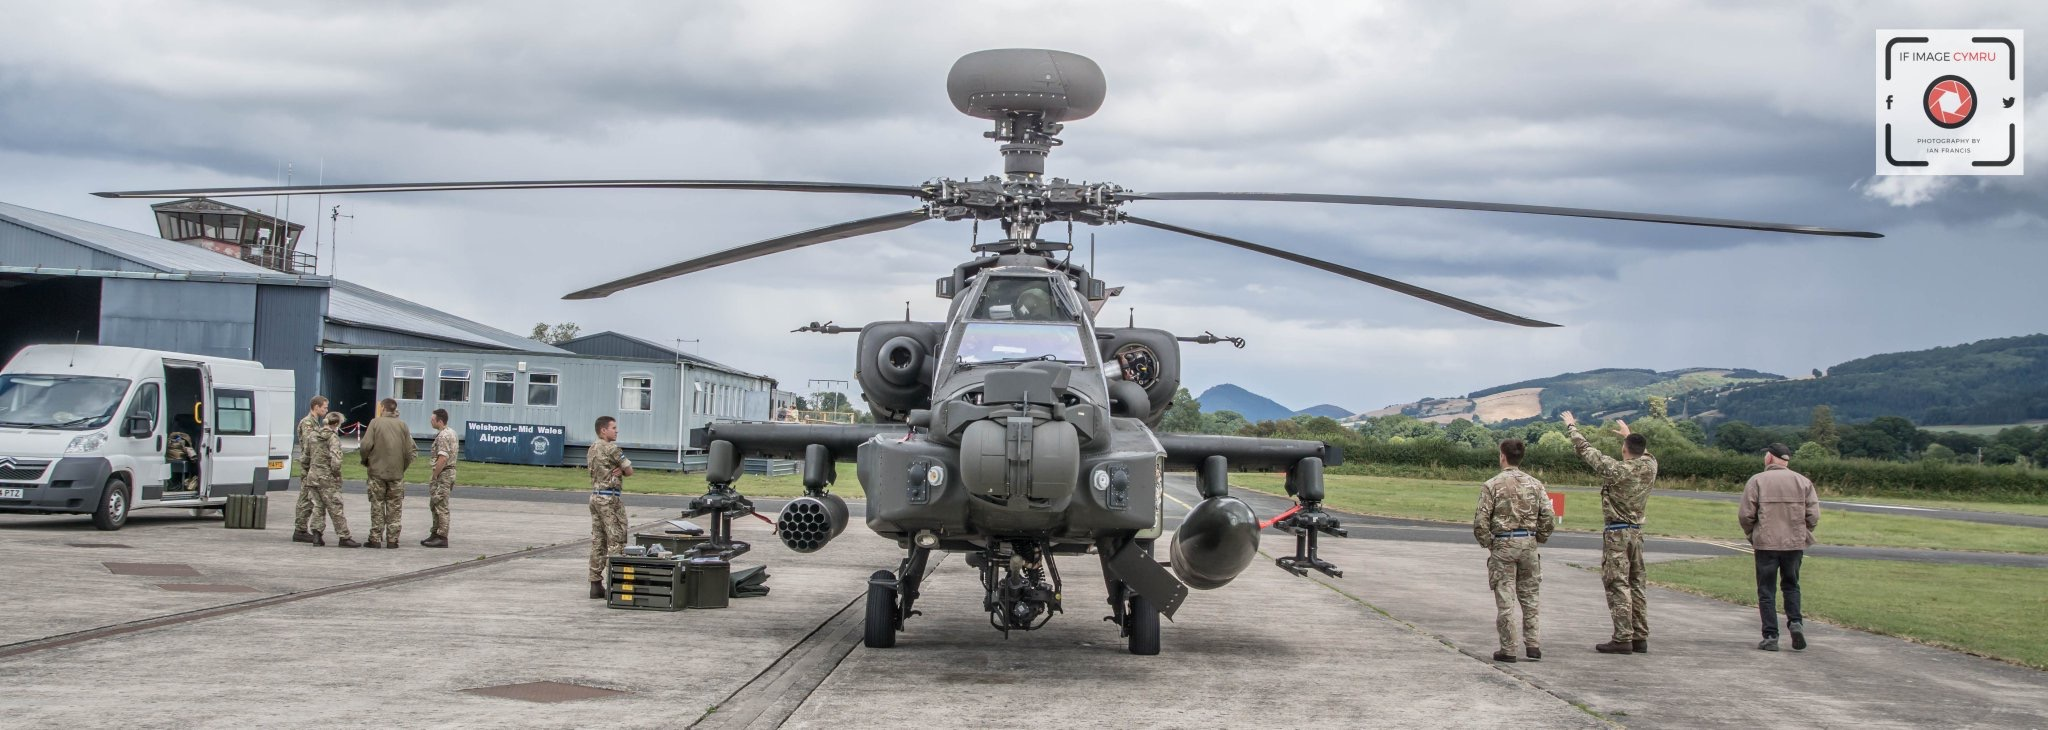 The multi-million pound Apache helicopter landed at Welshpool Airport on August 10. [Ian Francis/IF Image Cymru]